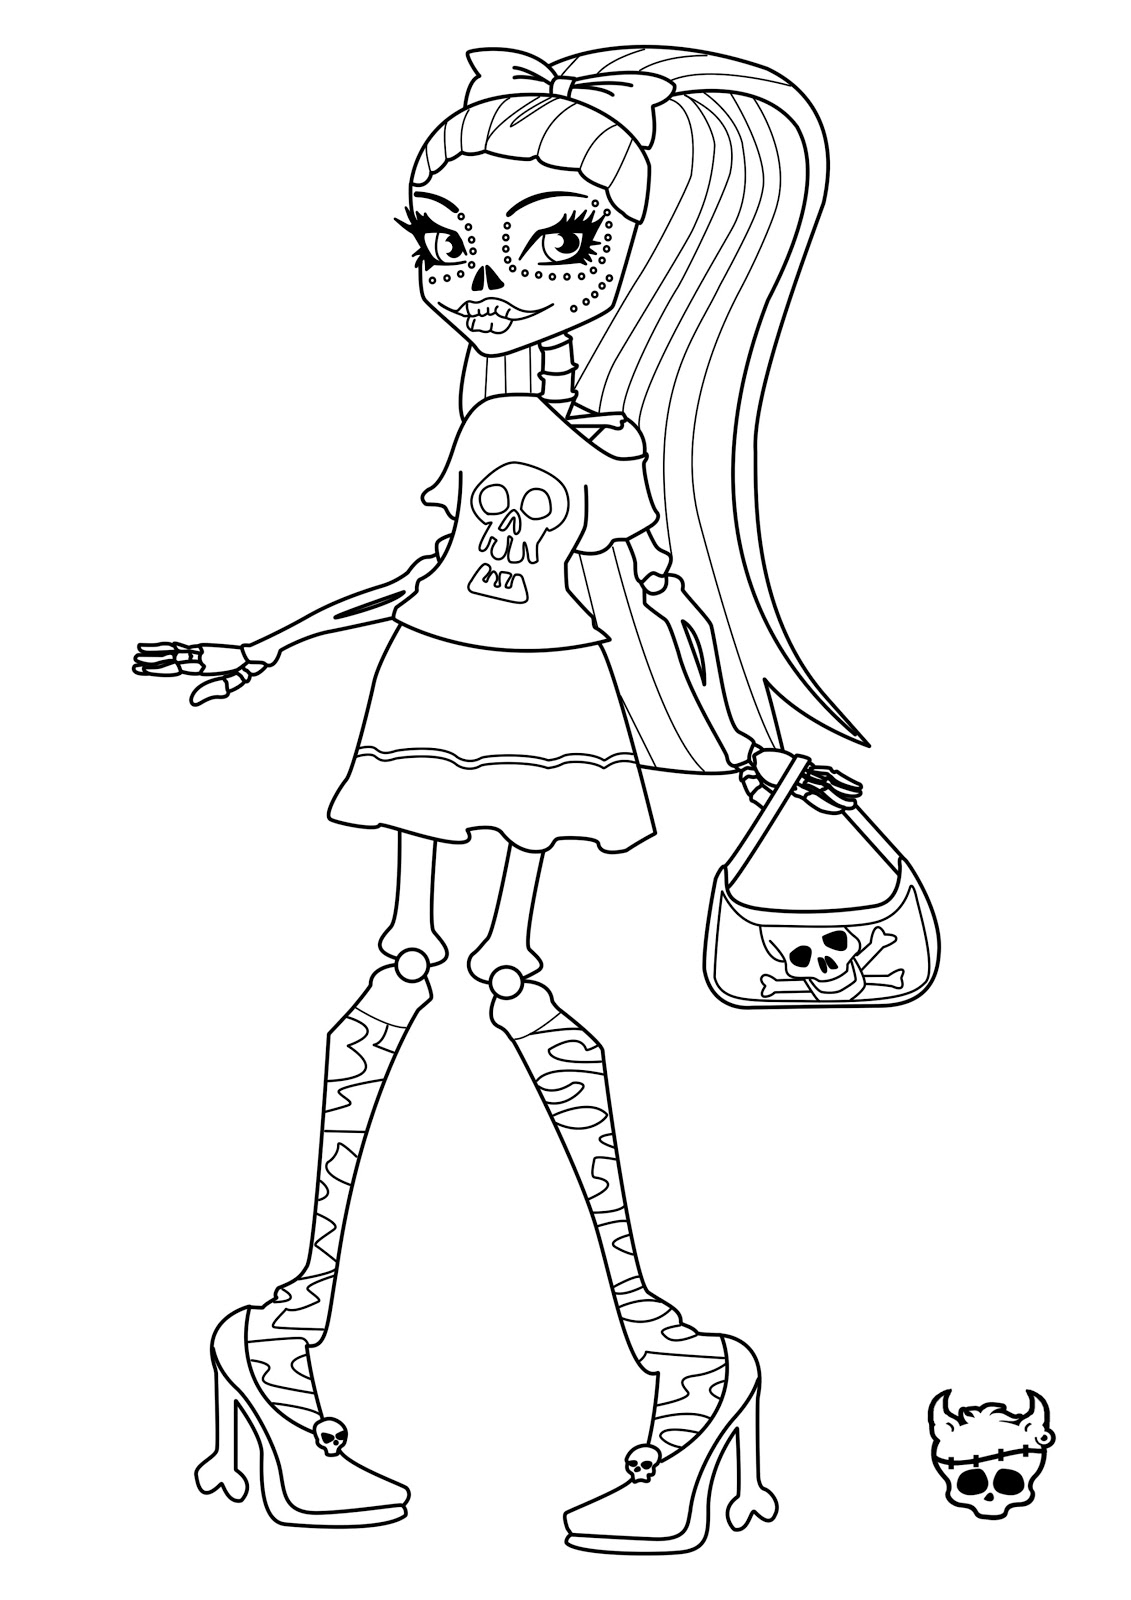 Tattoo Monster High Skelita Coloring Pages Free Printable Coloring